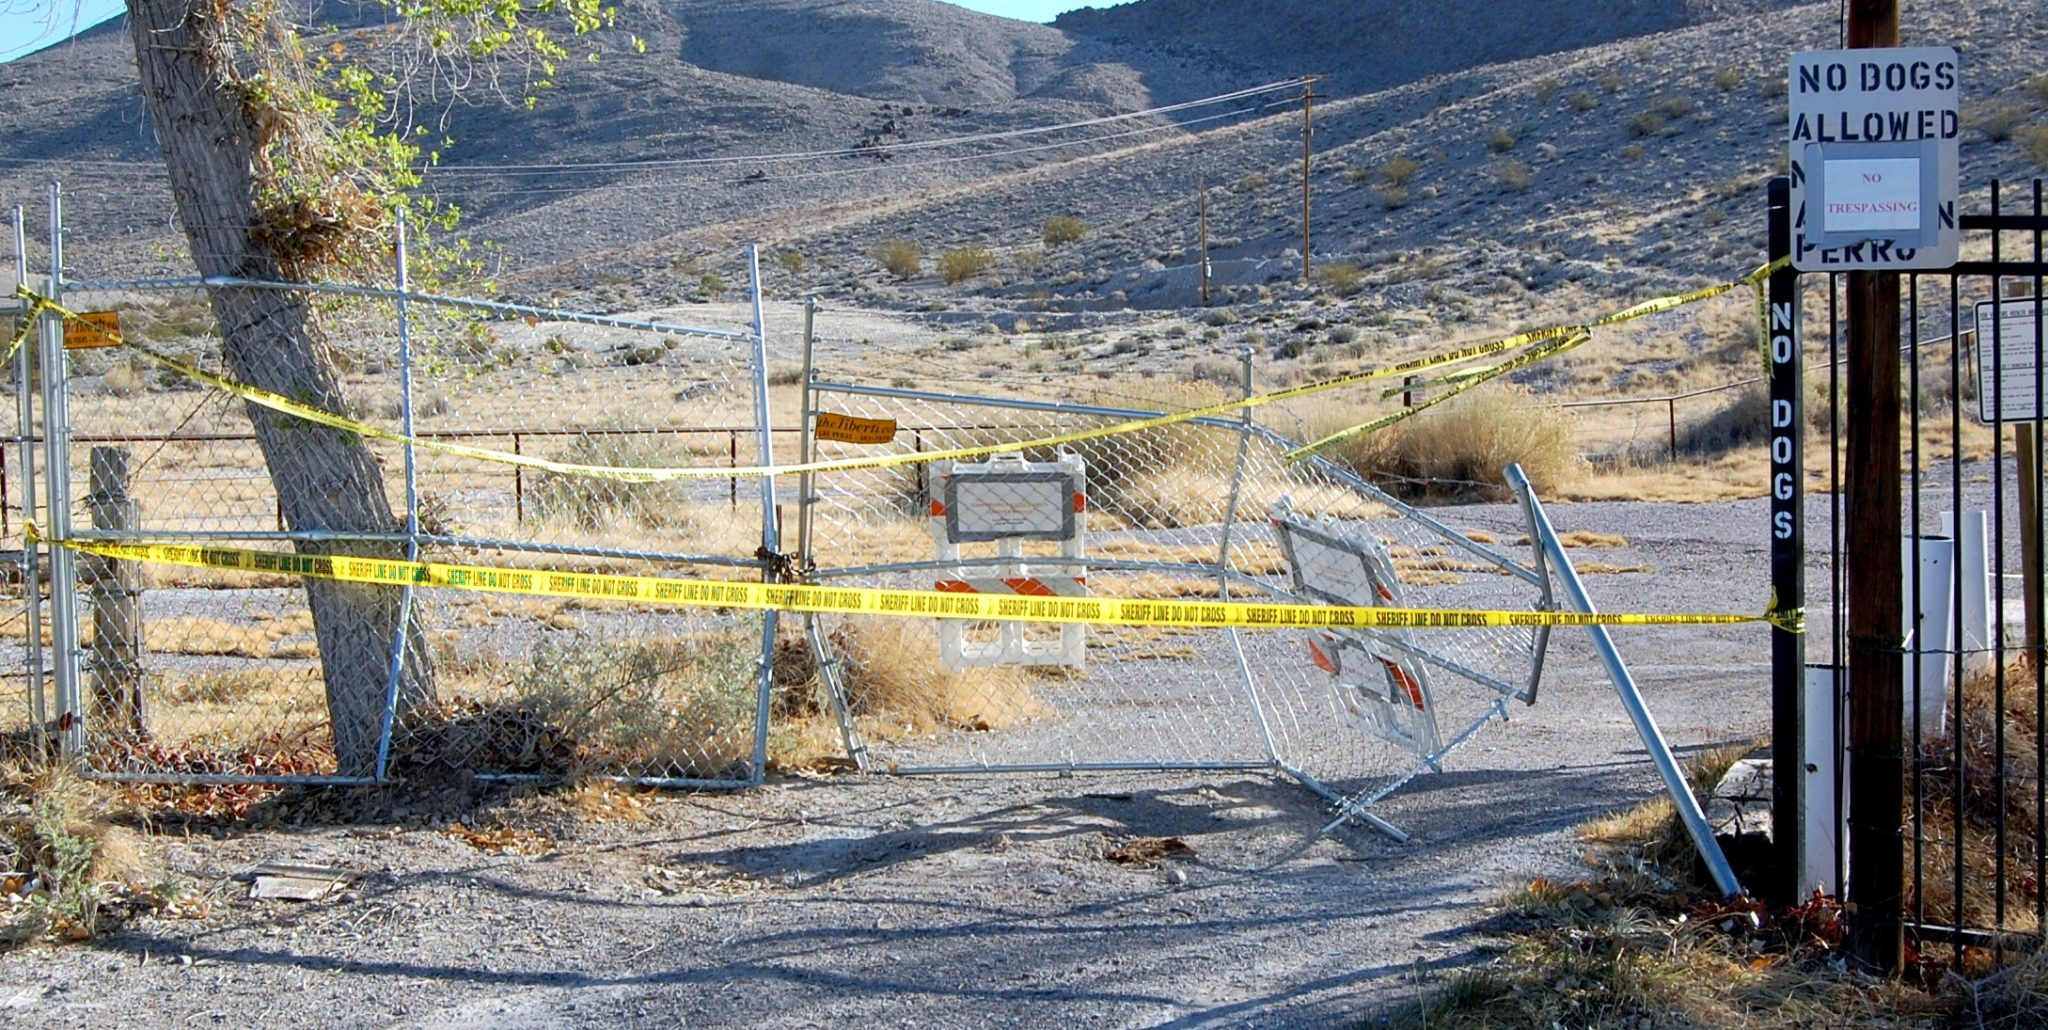 Vandals smash entrance gate of closed Little Ash Springs